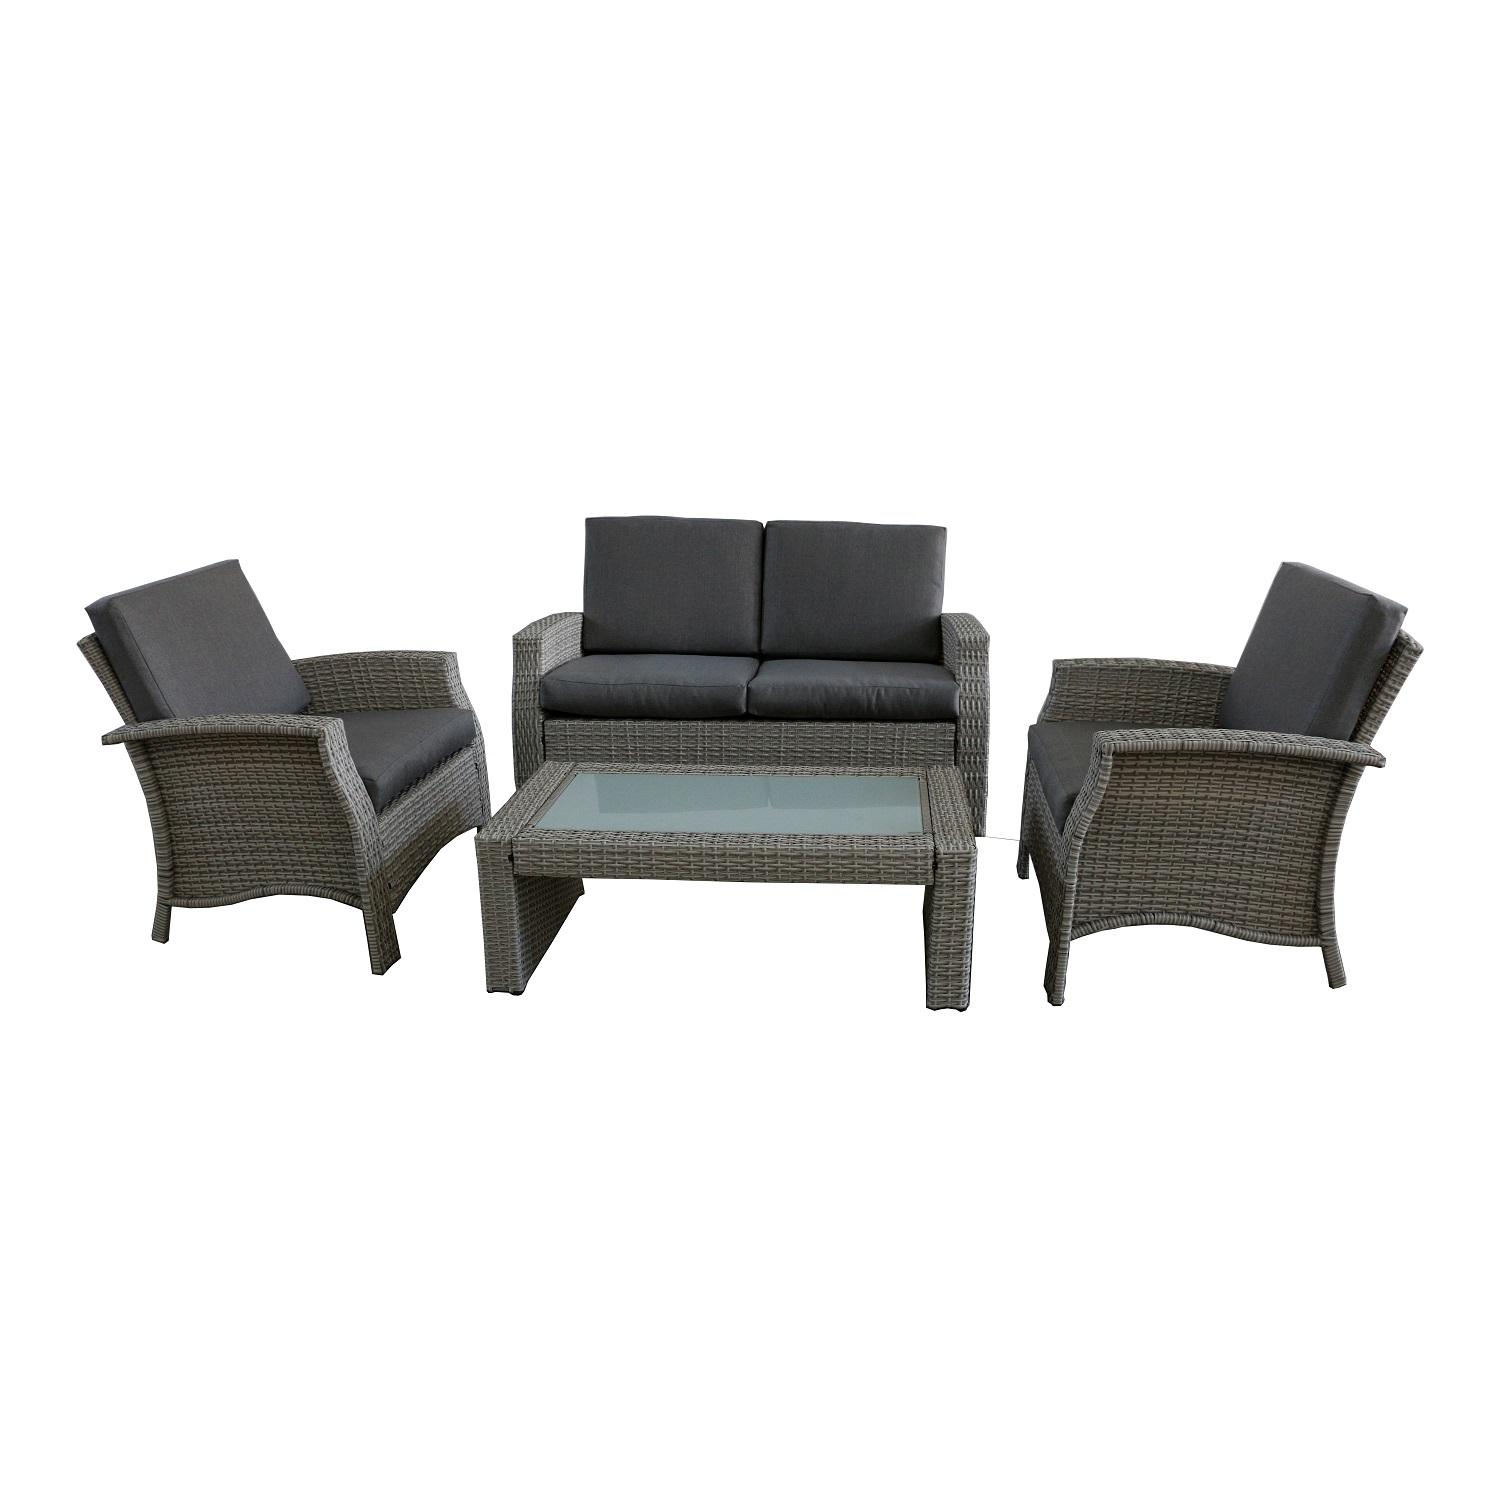 Good 4 Piece Gray Resin Wicker Outdoor Patio Furniture Set   Gray Cushions Part 29